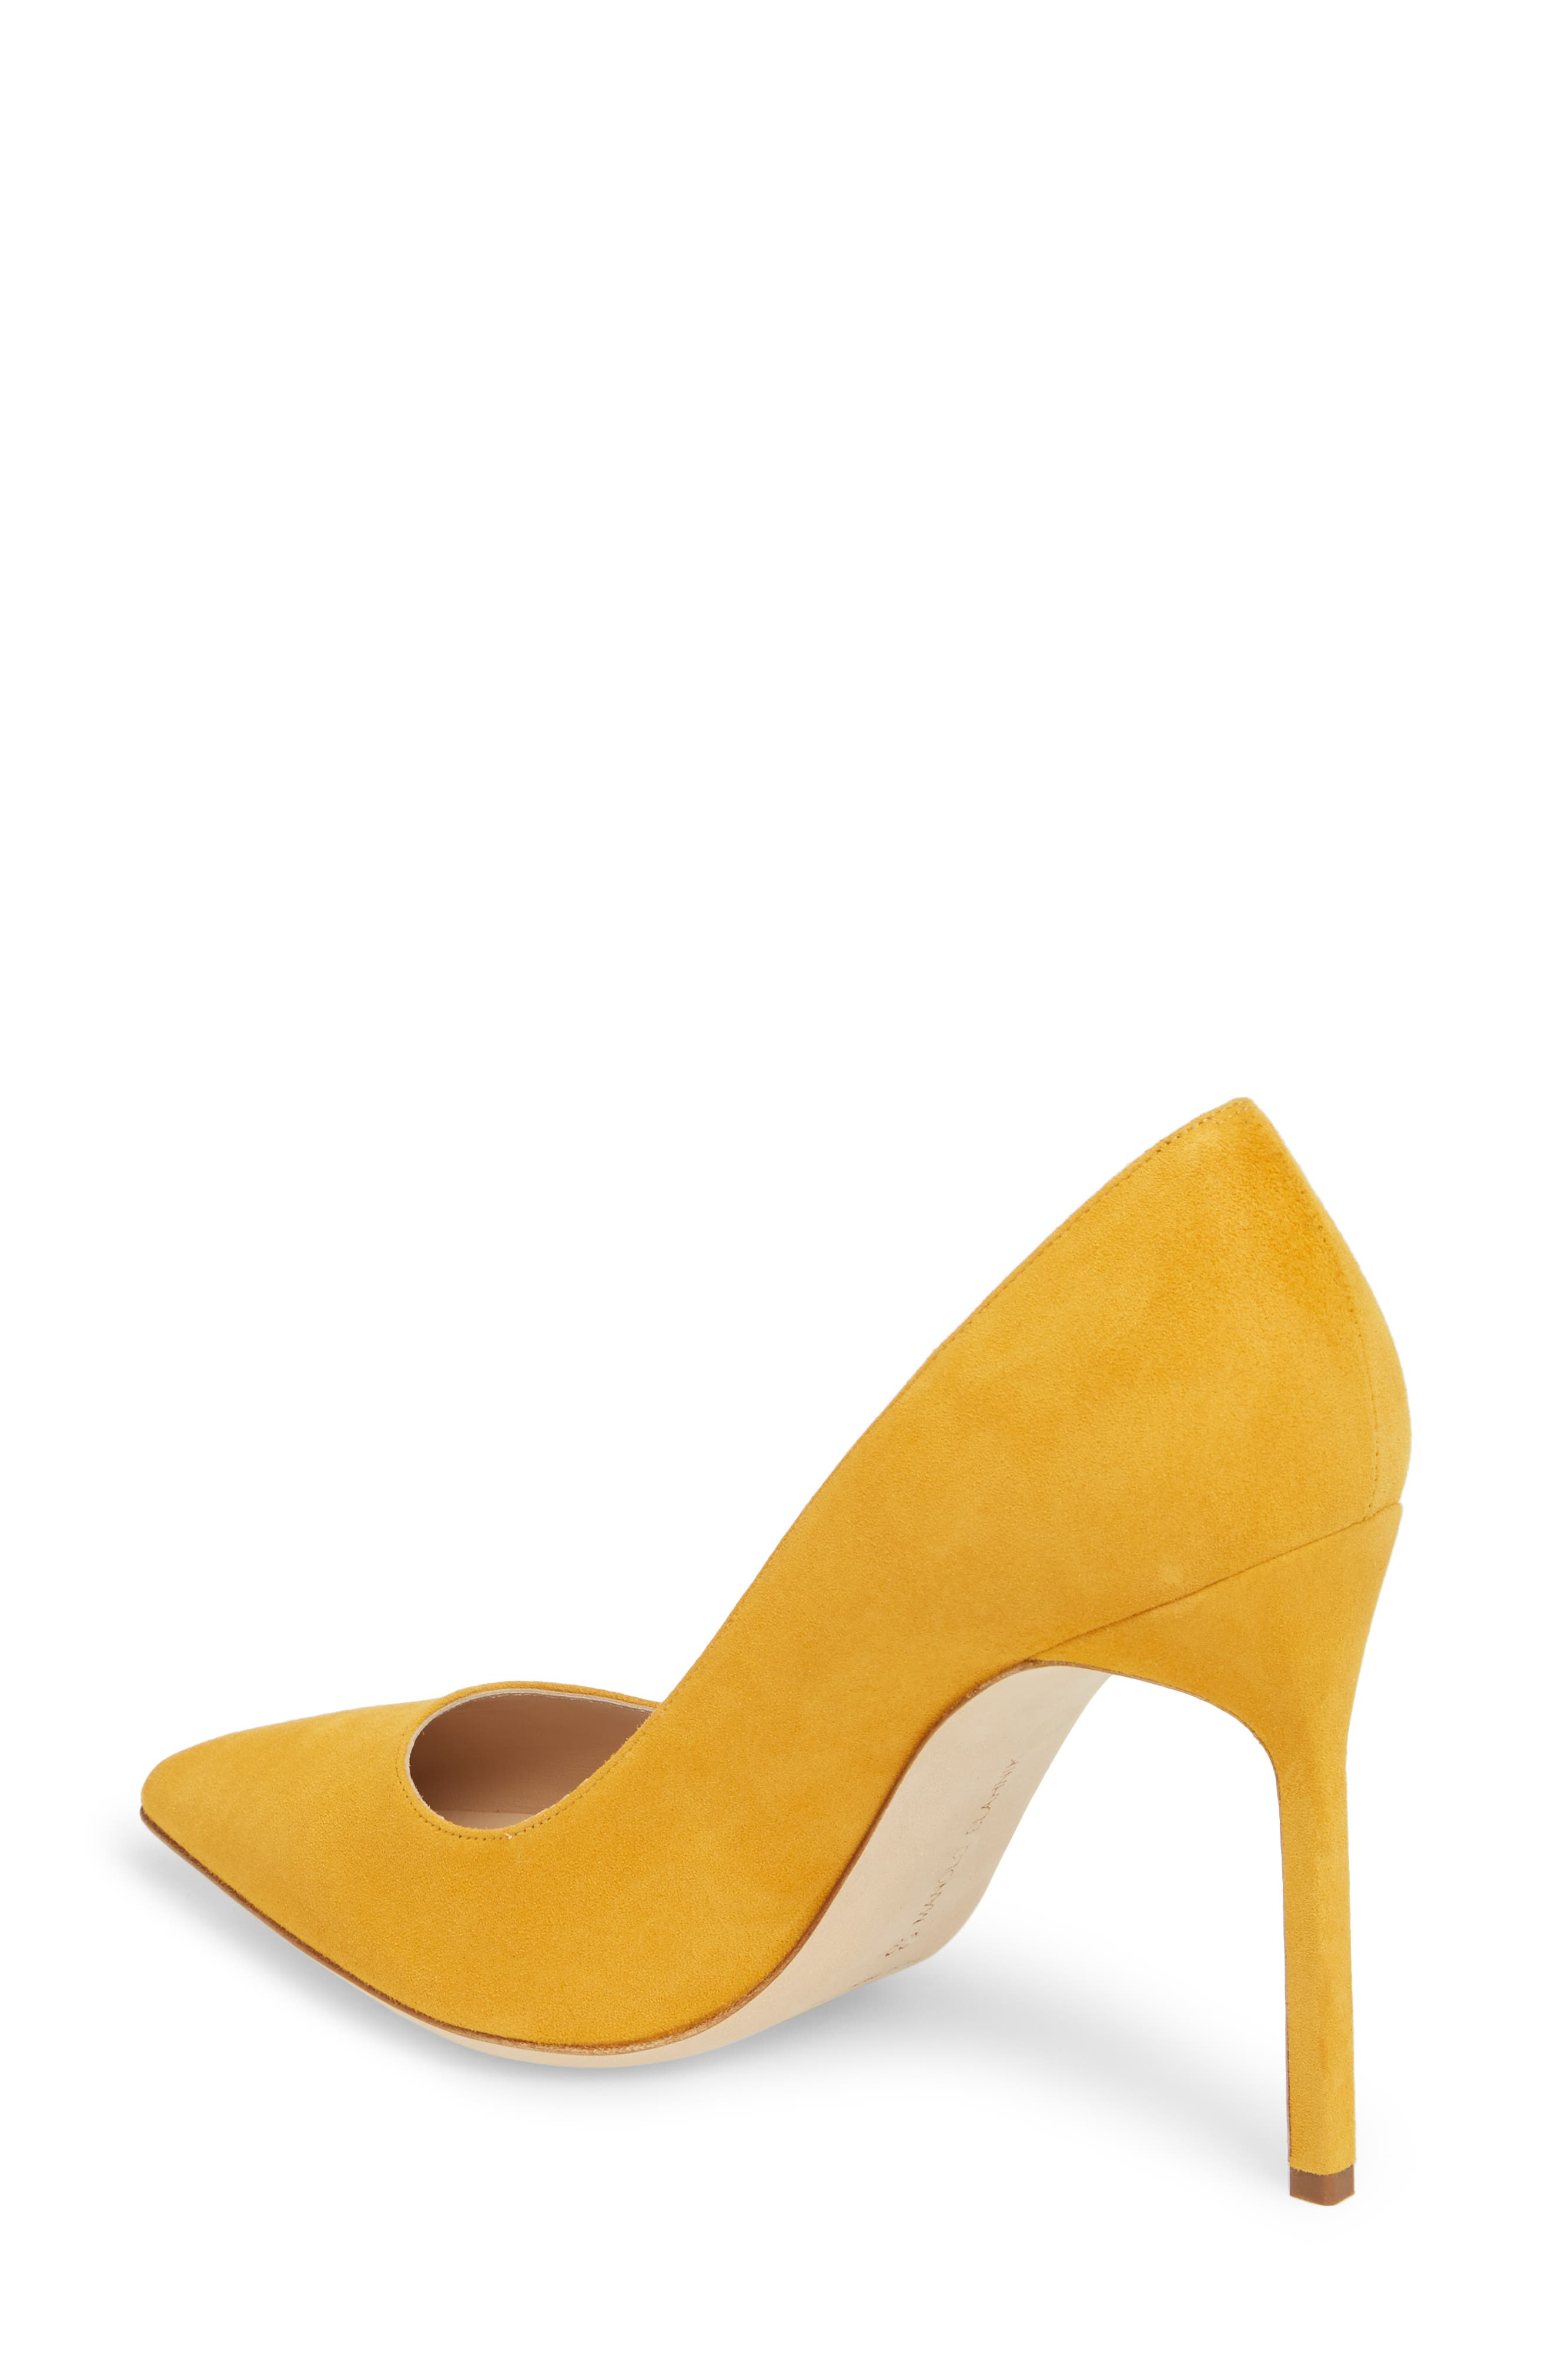 'BB' Pointy Toe Pump,                             Alternate thumbnail 2, color,                             Arbor Yellow